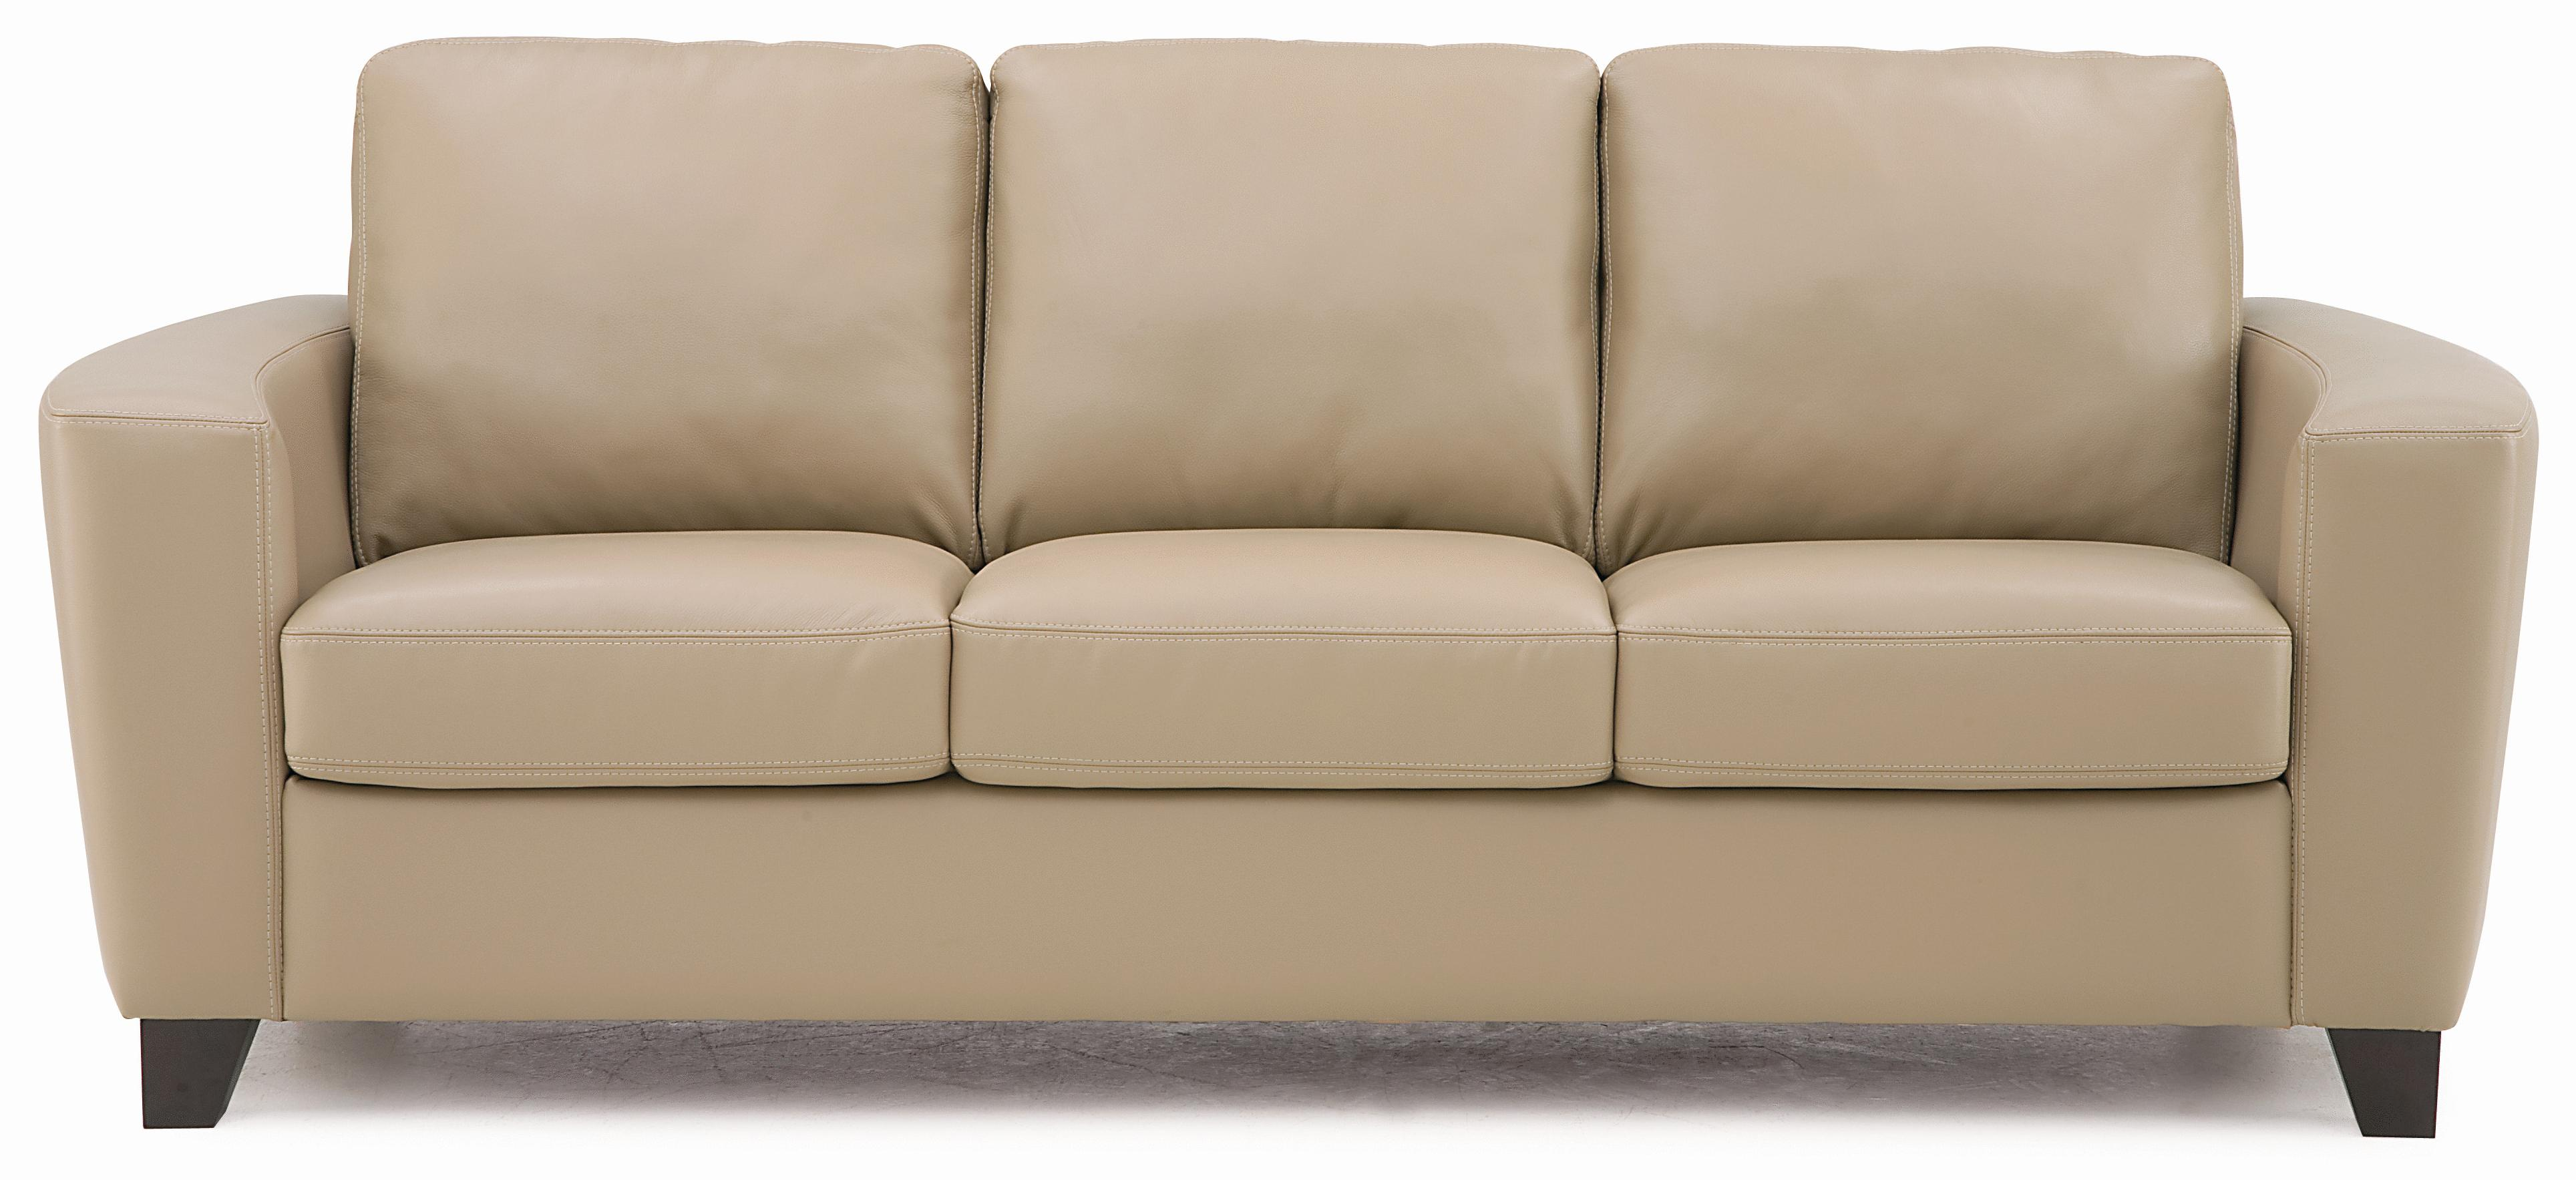 Palliser Leeds Contemporary Sofa With Curved Track Arm Ahfa  ~ Curved Contemporary Sofa